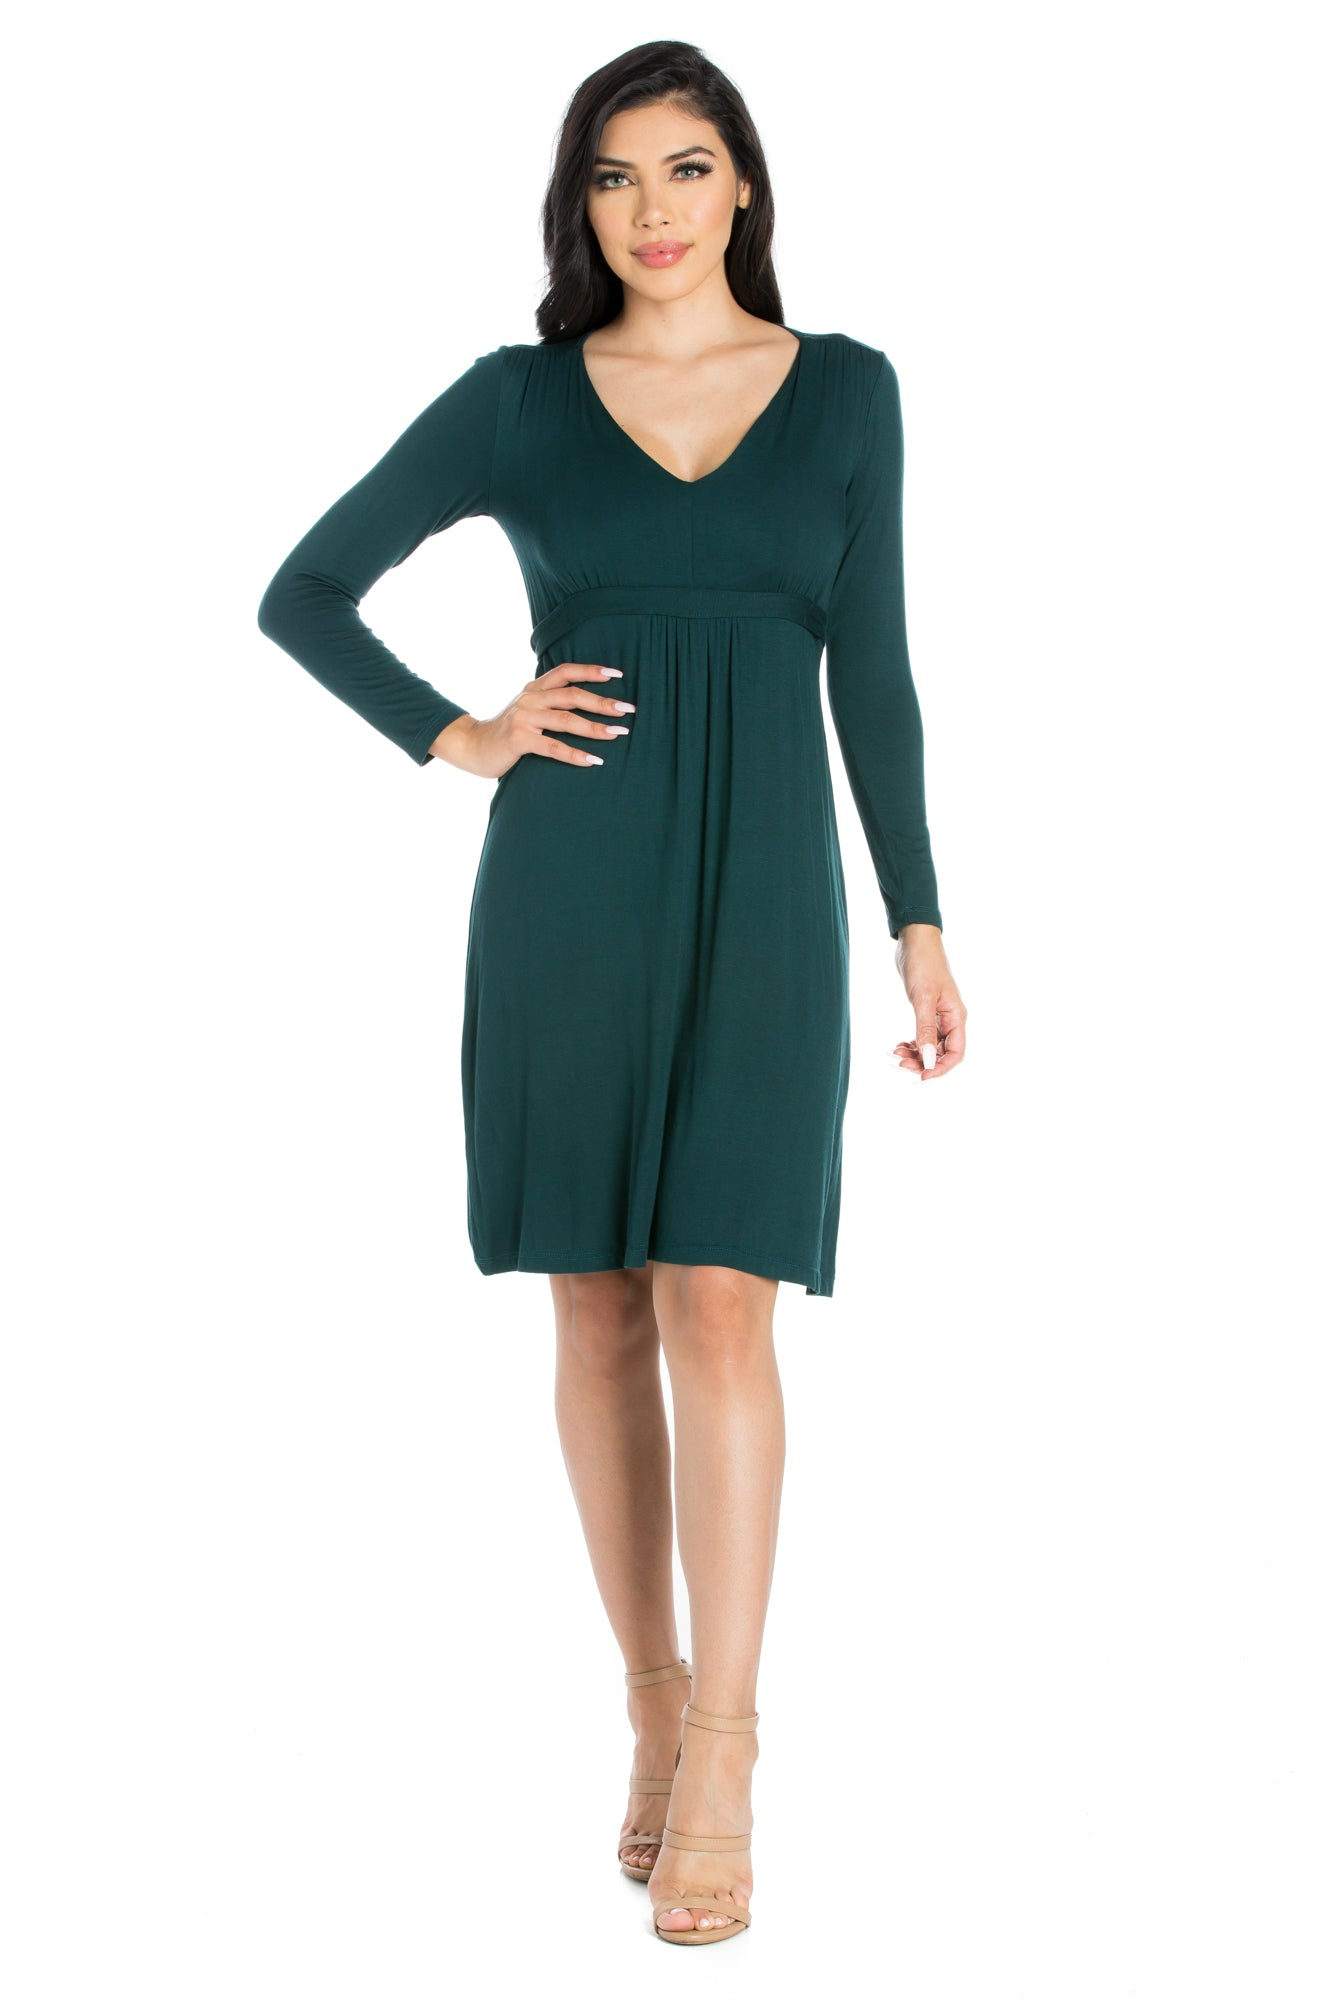 24seven Comfort Apparel Long Sleeve V-Neck Cocktail Dress